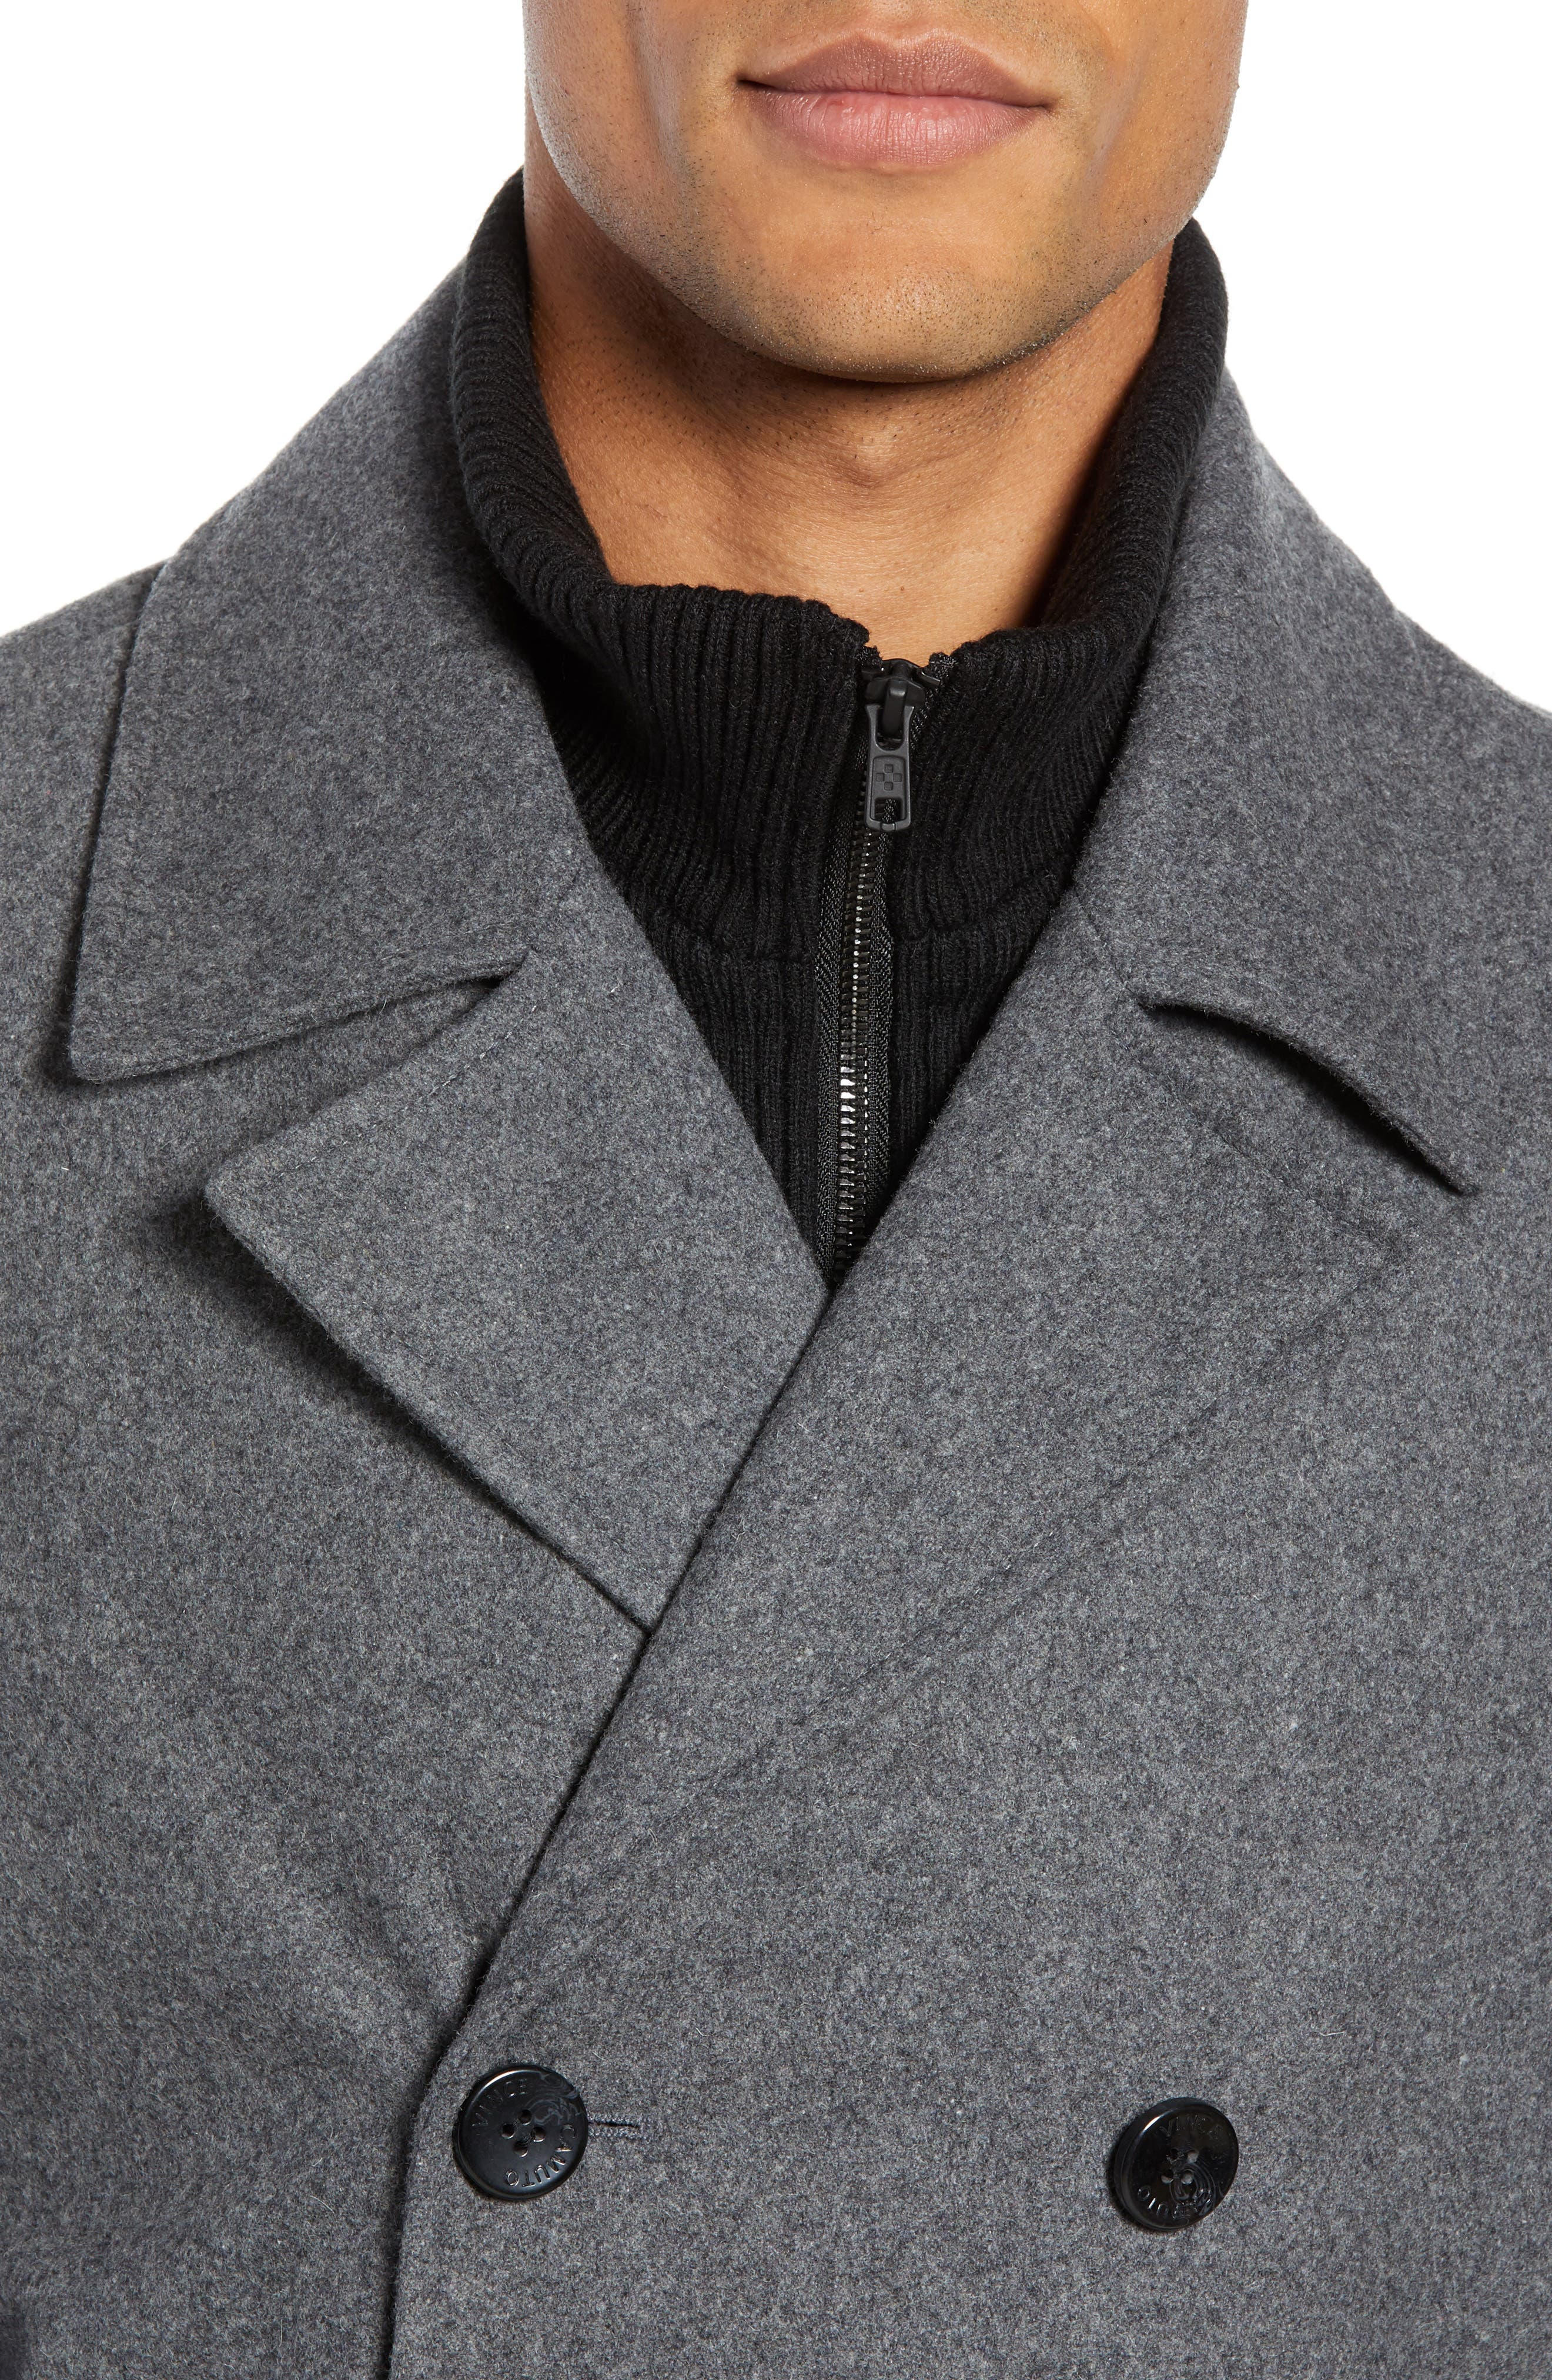 VINCE CAMUTO, Dock Peacoat, Alternate thumbnail 5, color, HEATHER GREY